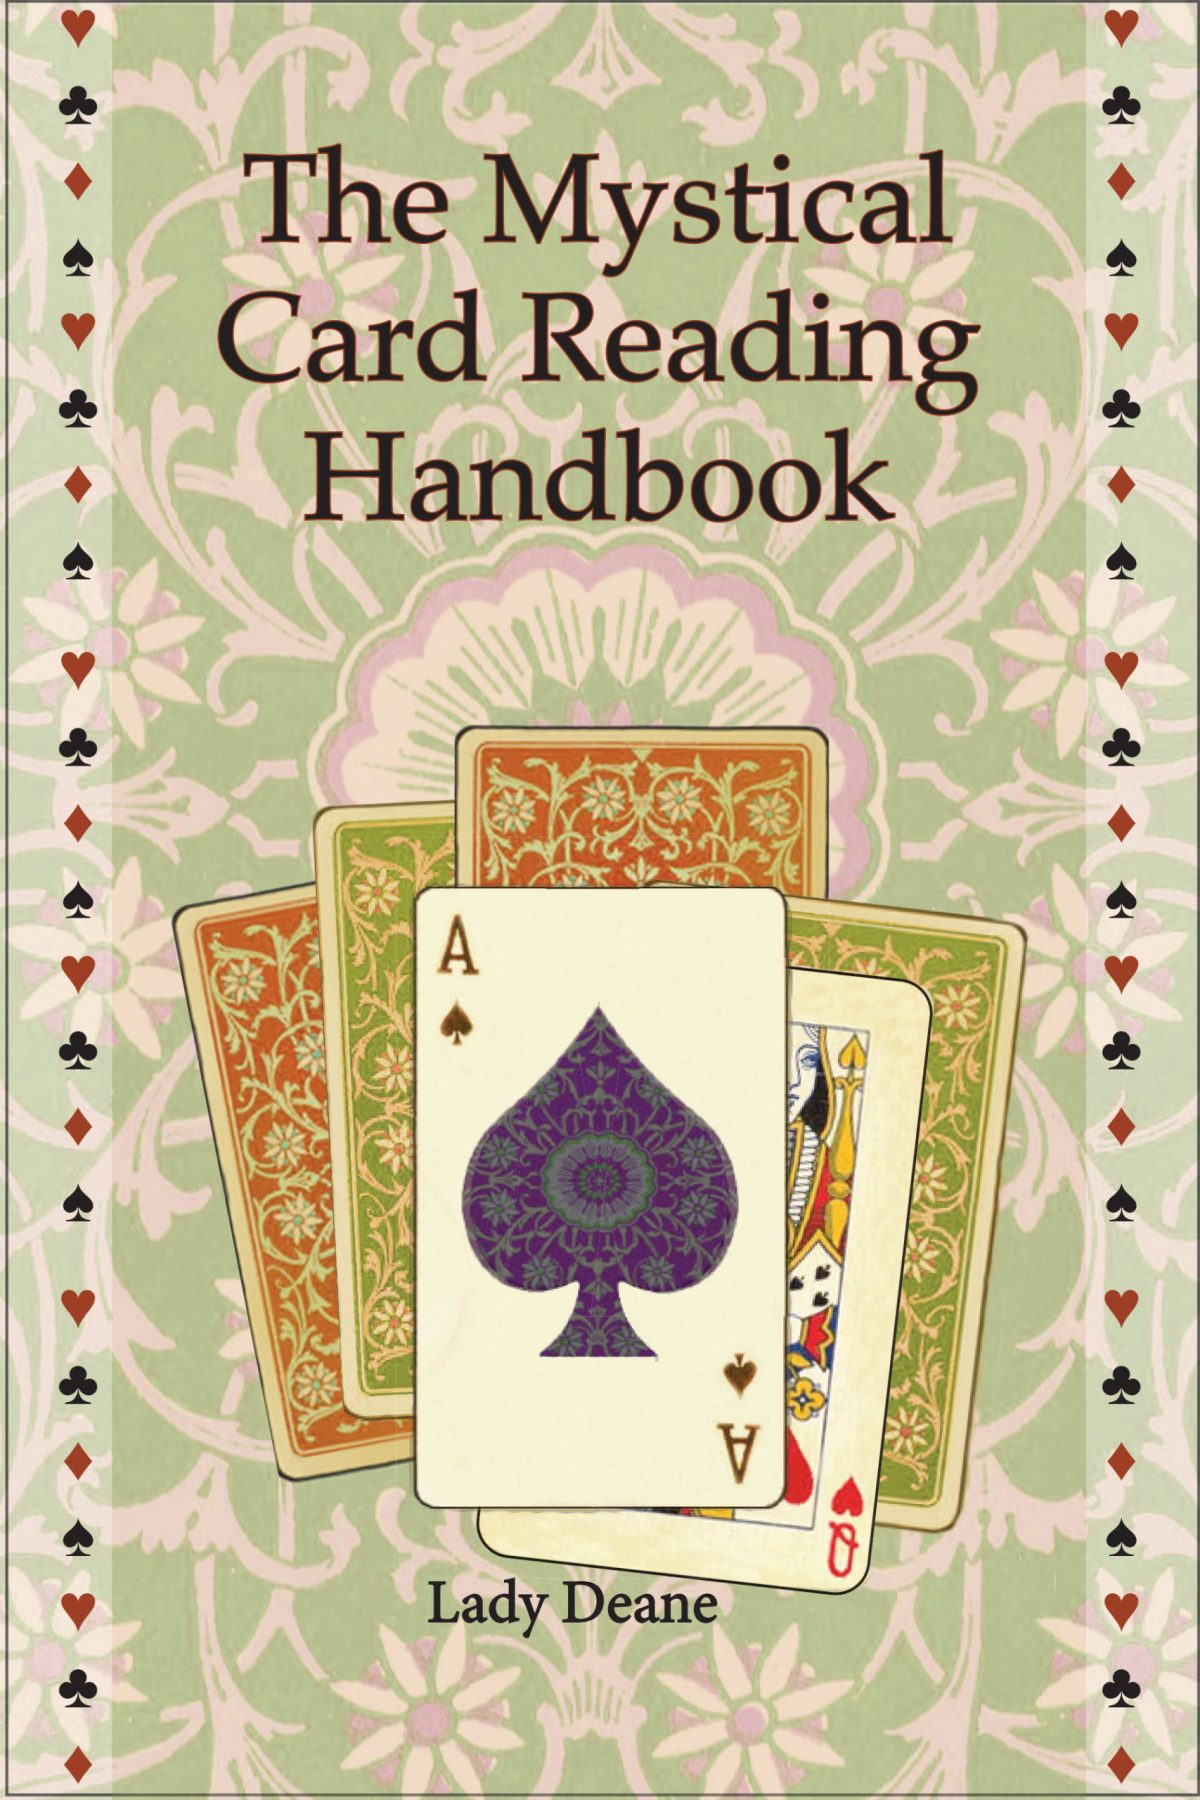 Mystical-Card-Reading-Handbook-front-1